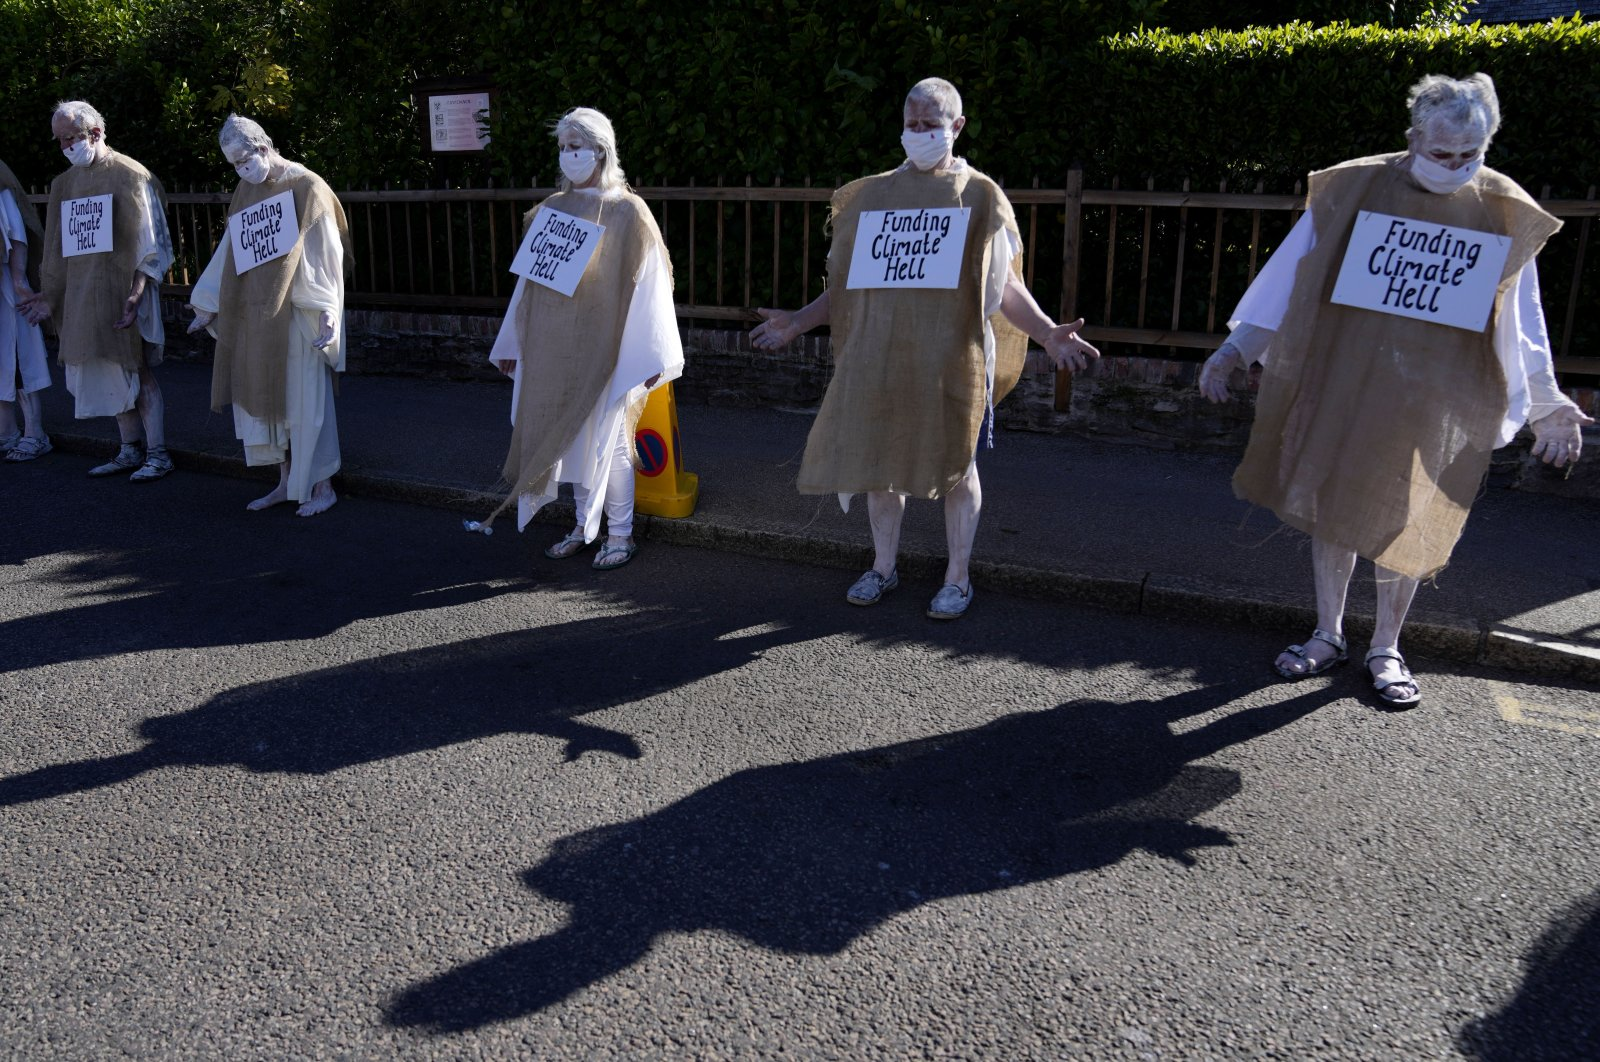 Climate protestors march in potato sacks with signs during a demonstration in Falmouth, Cornwall, England, June 12, 2021. (AP Photo)